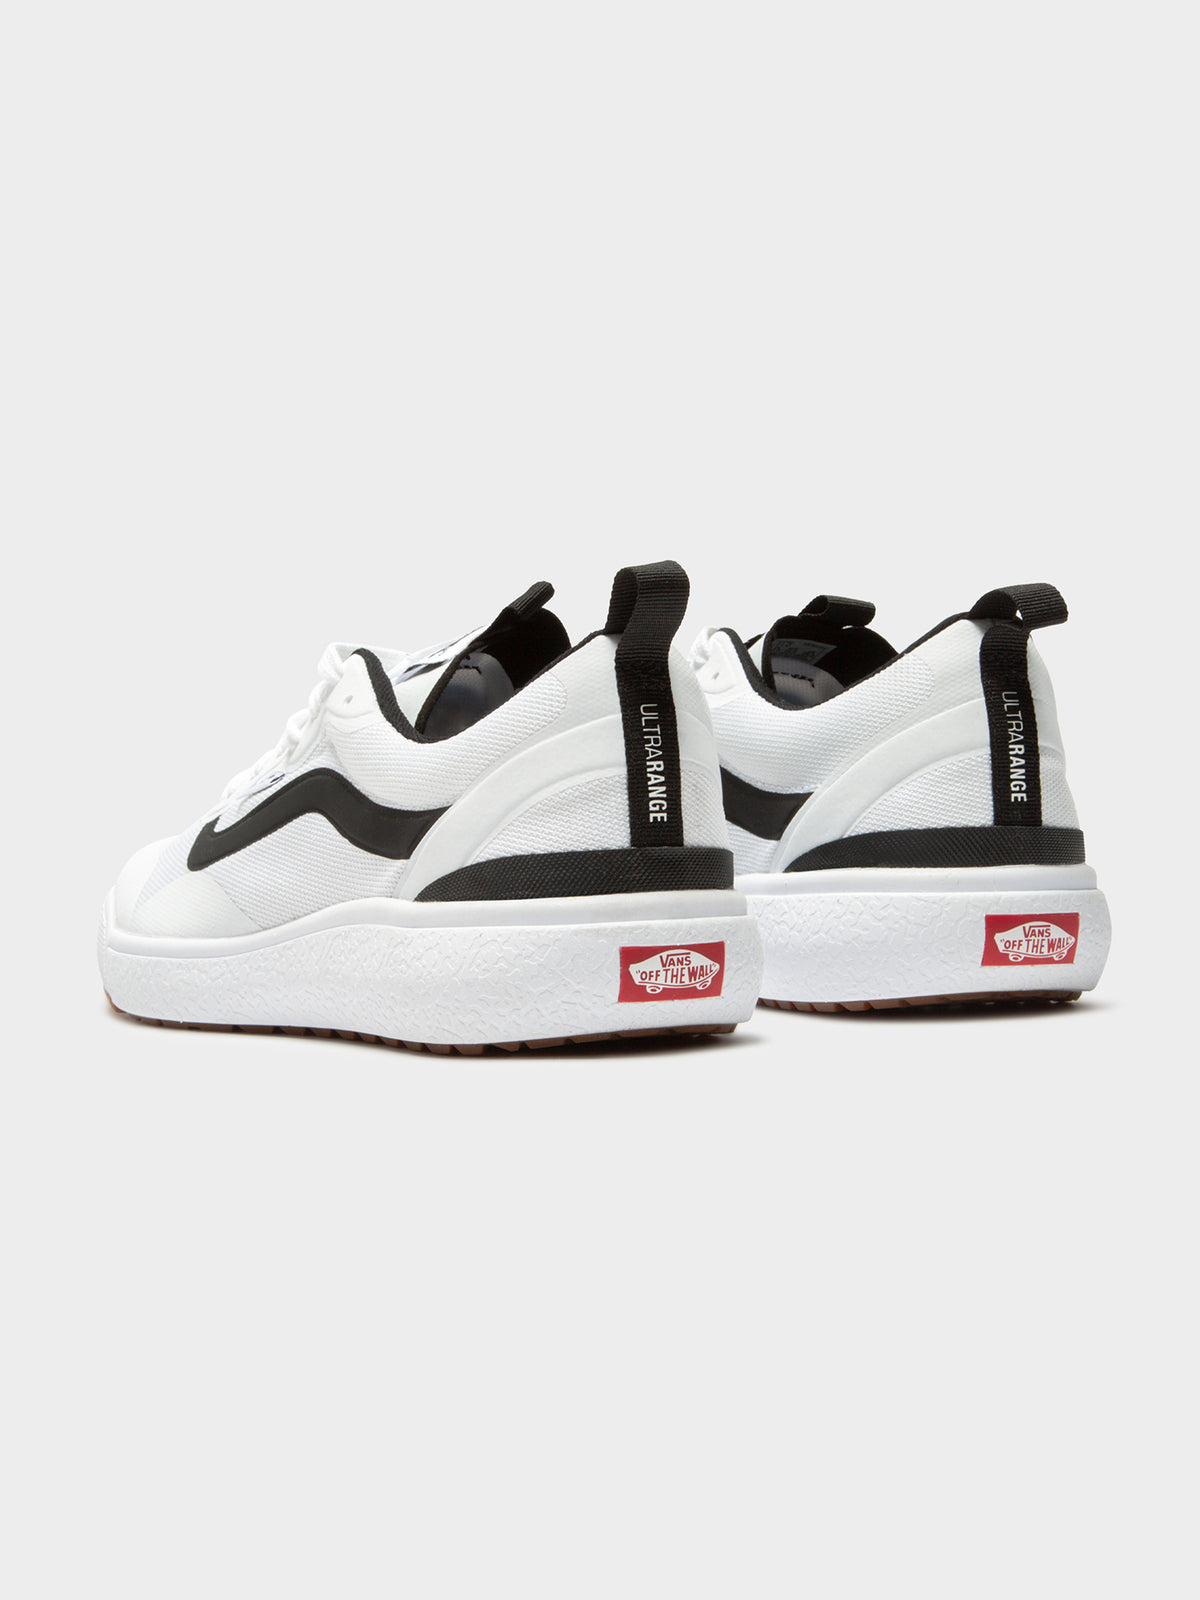 Unisex UltraRange Exo Sneakers in White & Black